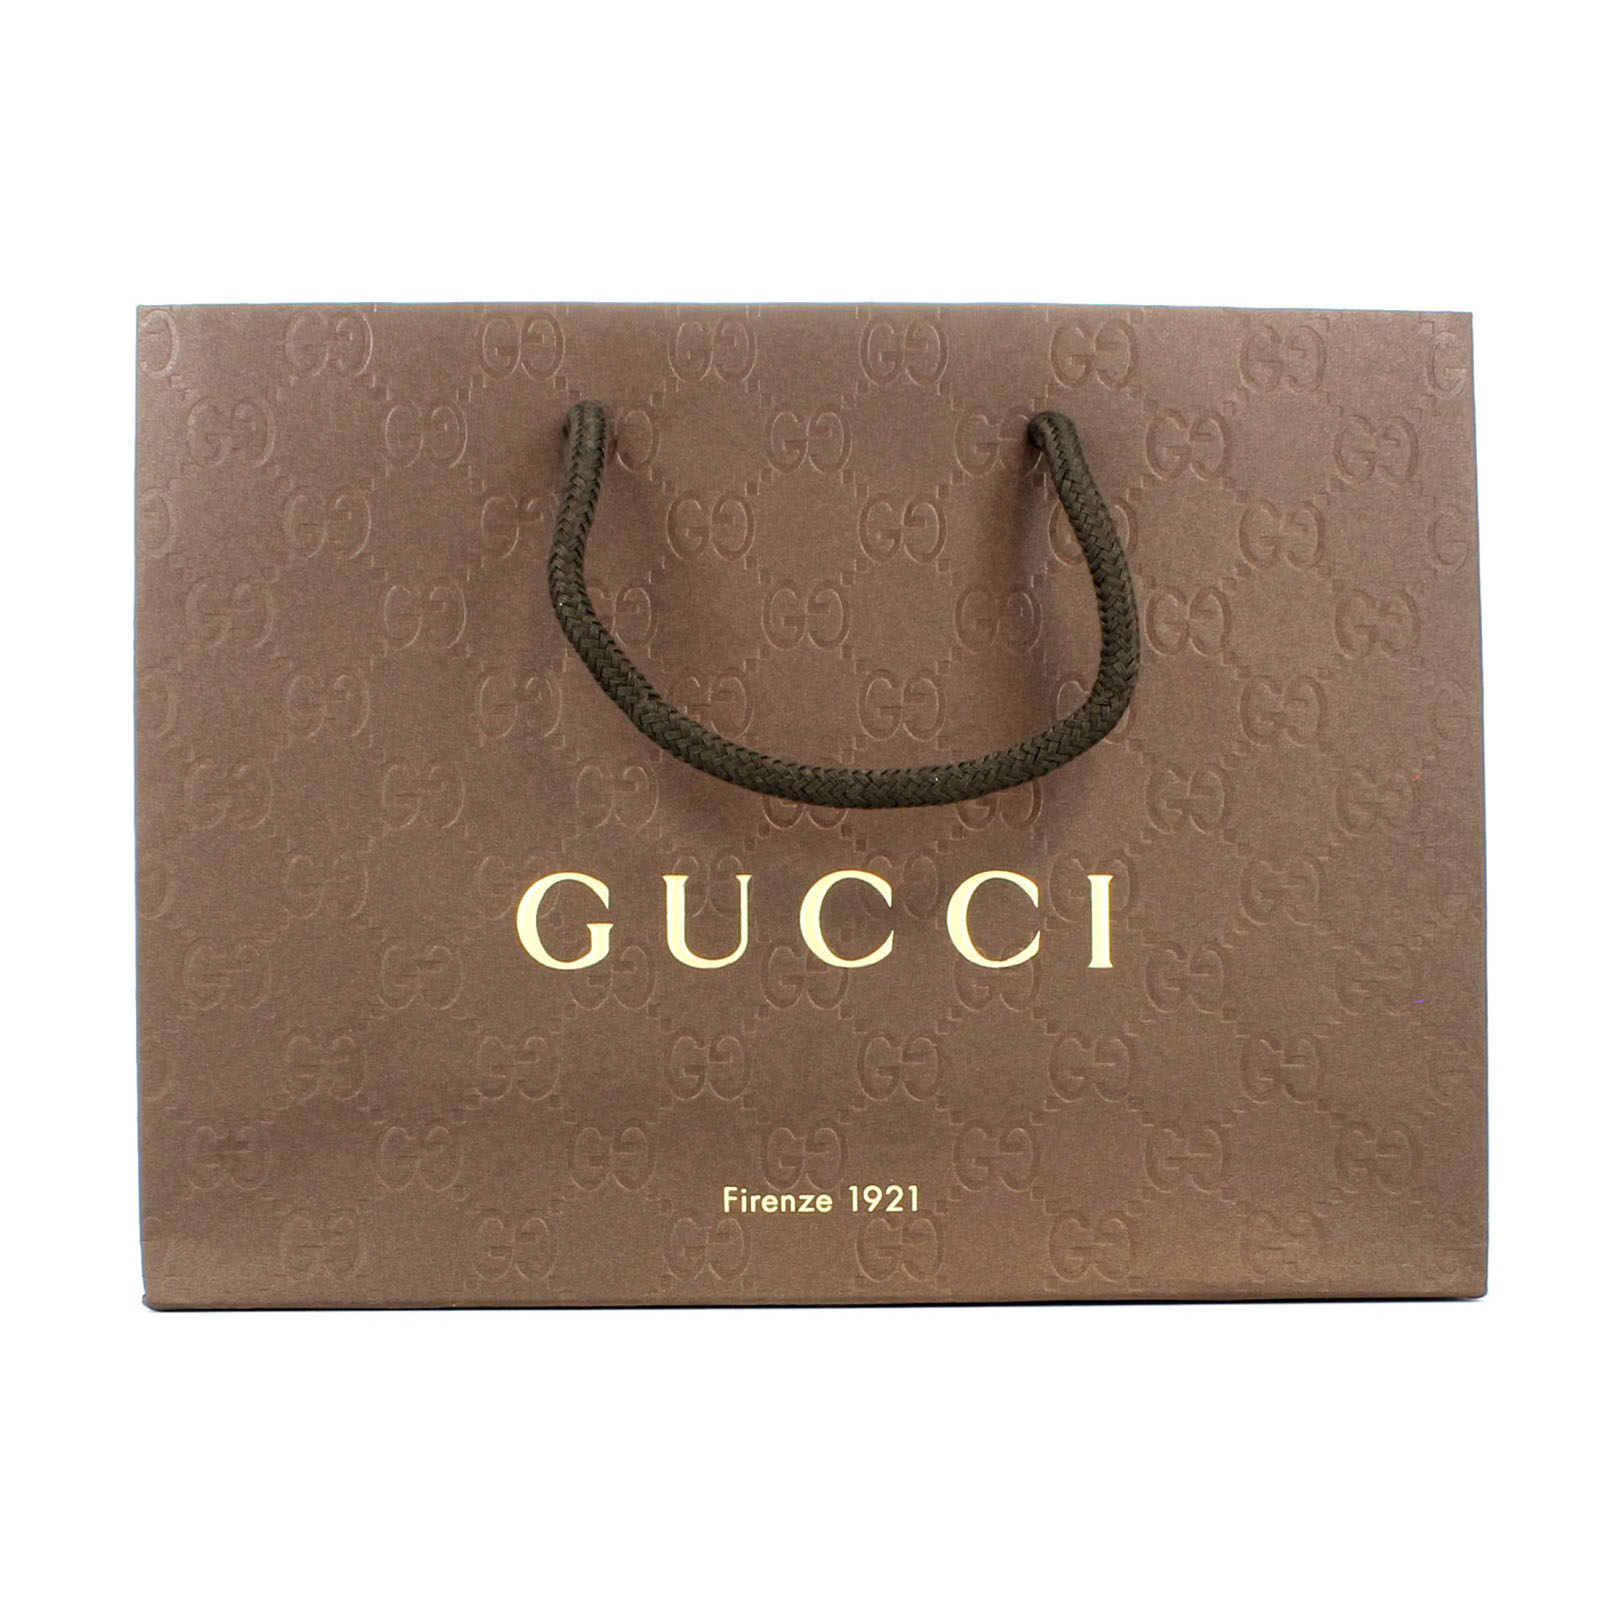 884efec1df1665 Gucci Shopper Paper Carrier Gift Bag pack of 25 Brand New in Wrappers  Genuine Thumbnail 1 ...